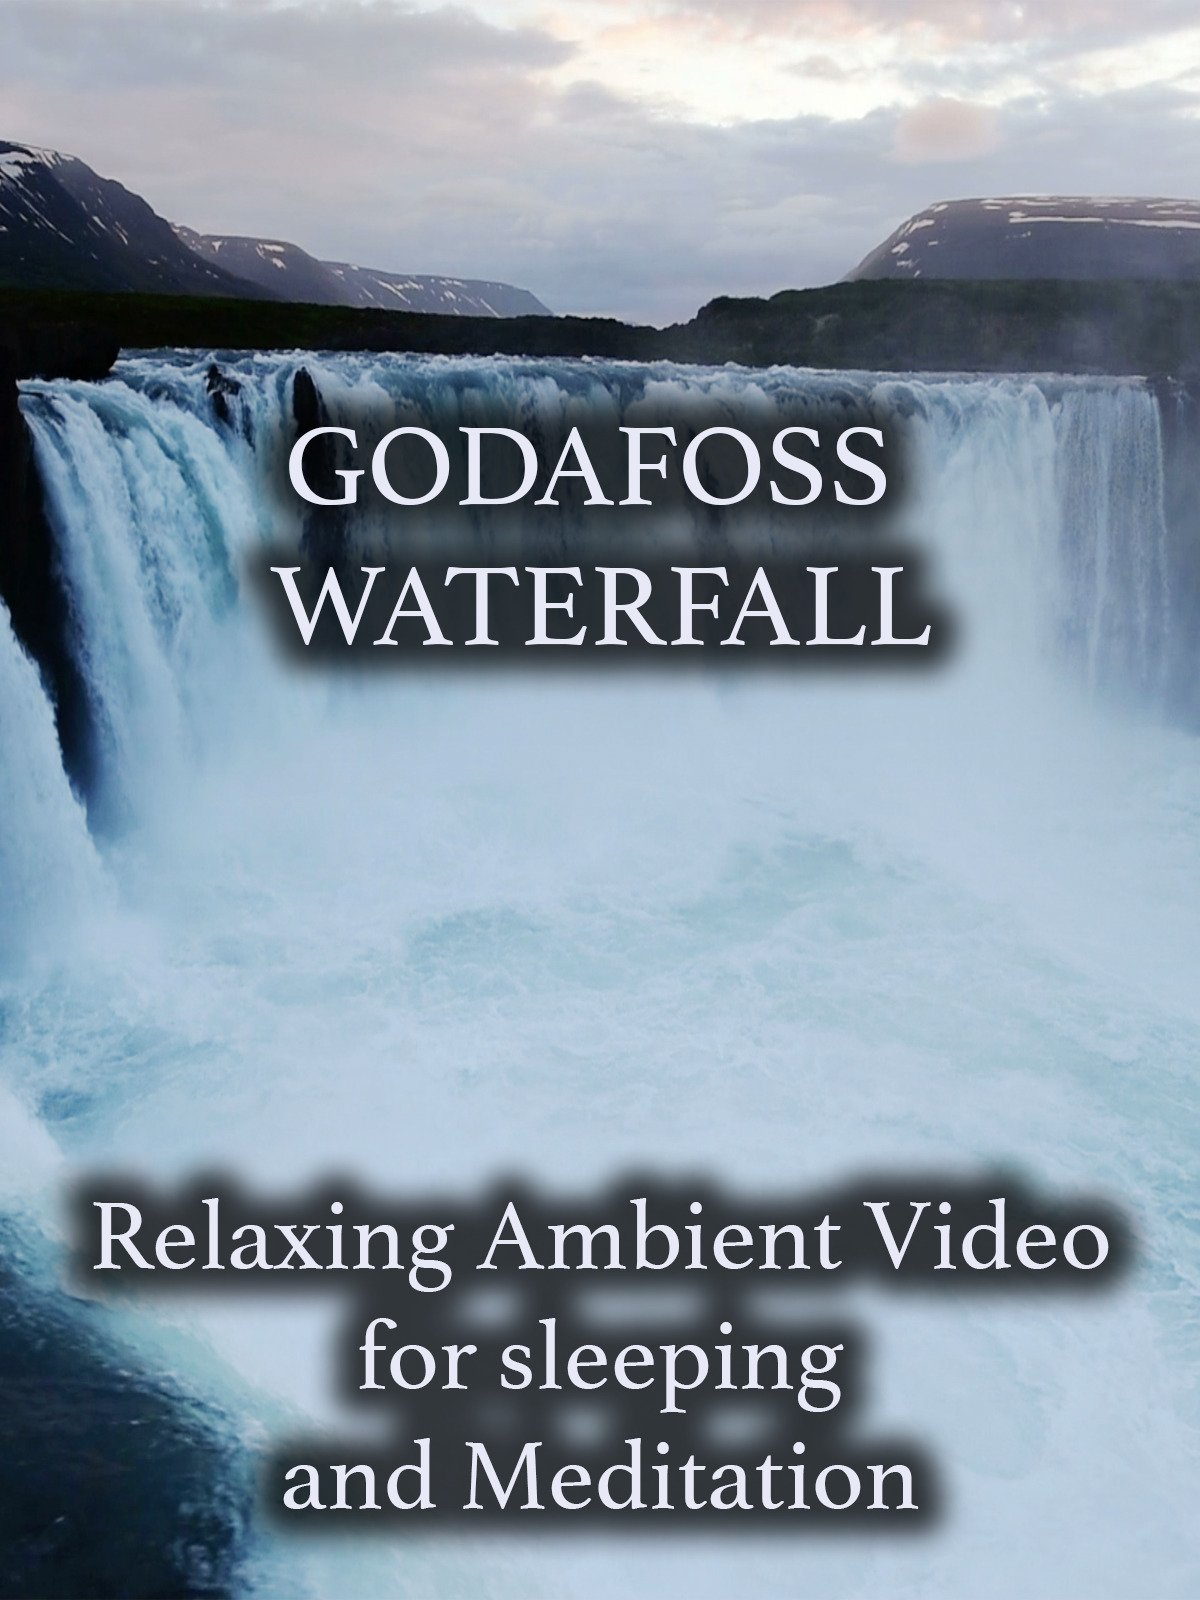 Godafoss Waterfall Relaxing Ambient Video for Sleeping and Meditation